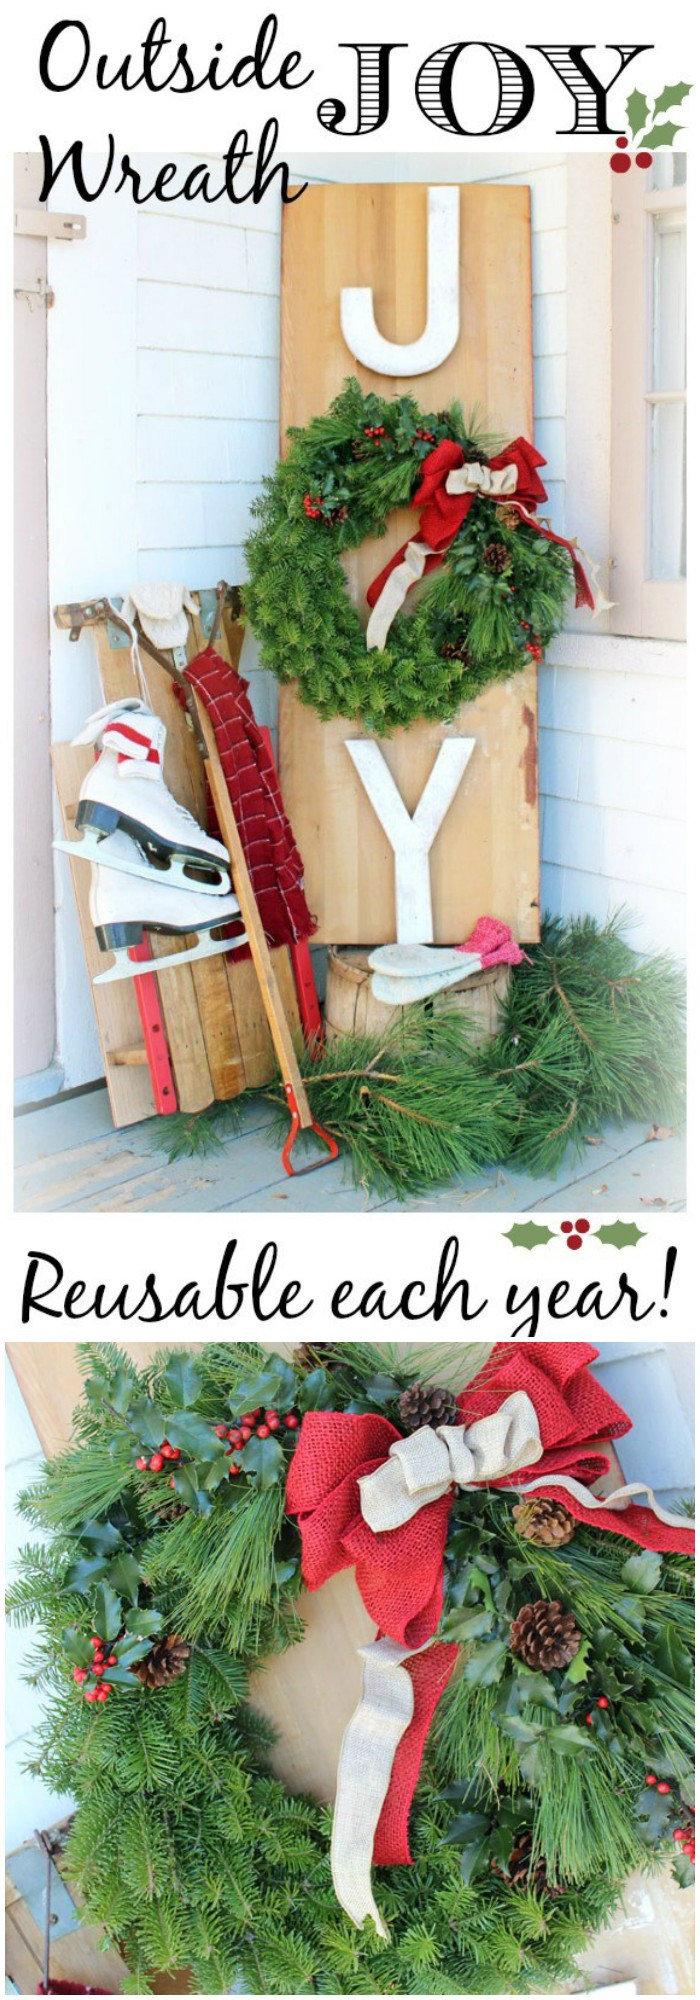 Best ideas about DIY Christmas Decorations Outdoors . Save or Pin 21 Cheap DIY Outdoor Christmas Decorations • DIY Home Decor Now.